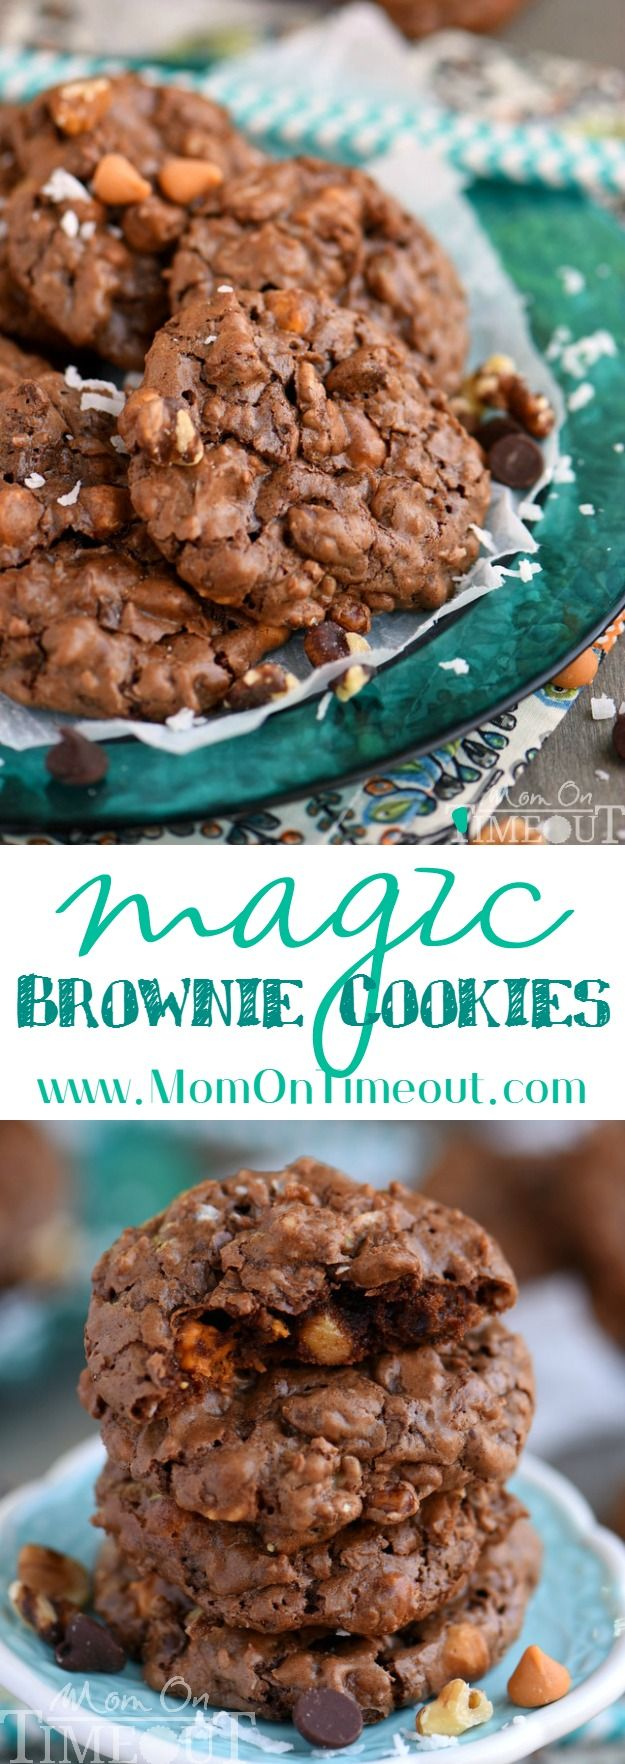 These Magic Brownie Cookies are packed full of flavor - coconut, butterscotch, walnuts, and of course, CHOCOLATE! This easy to make dessert will be a hit at your next party - no one can eat just one!   MomOnTimeout.com